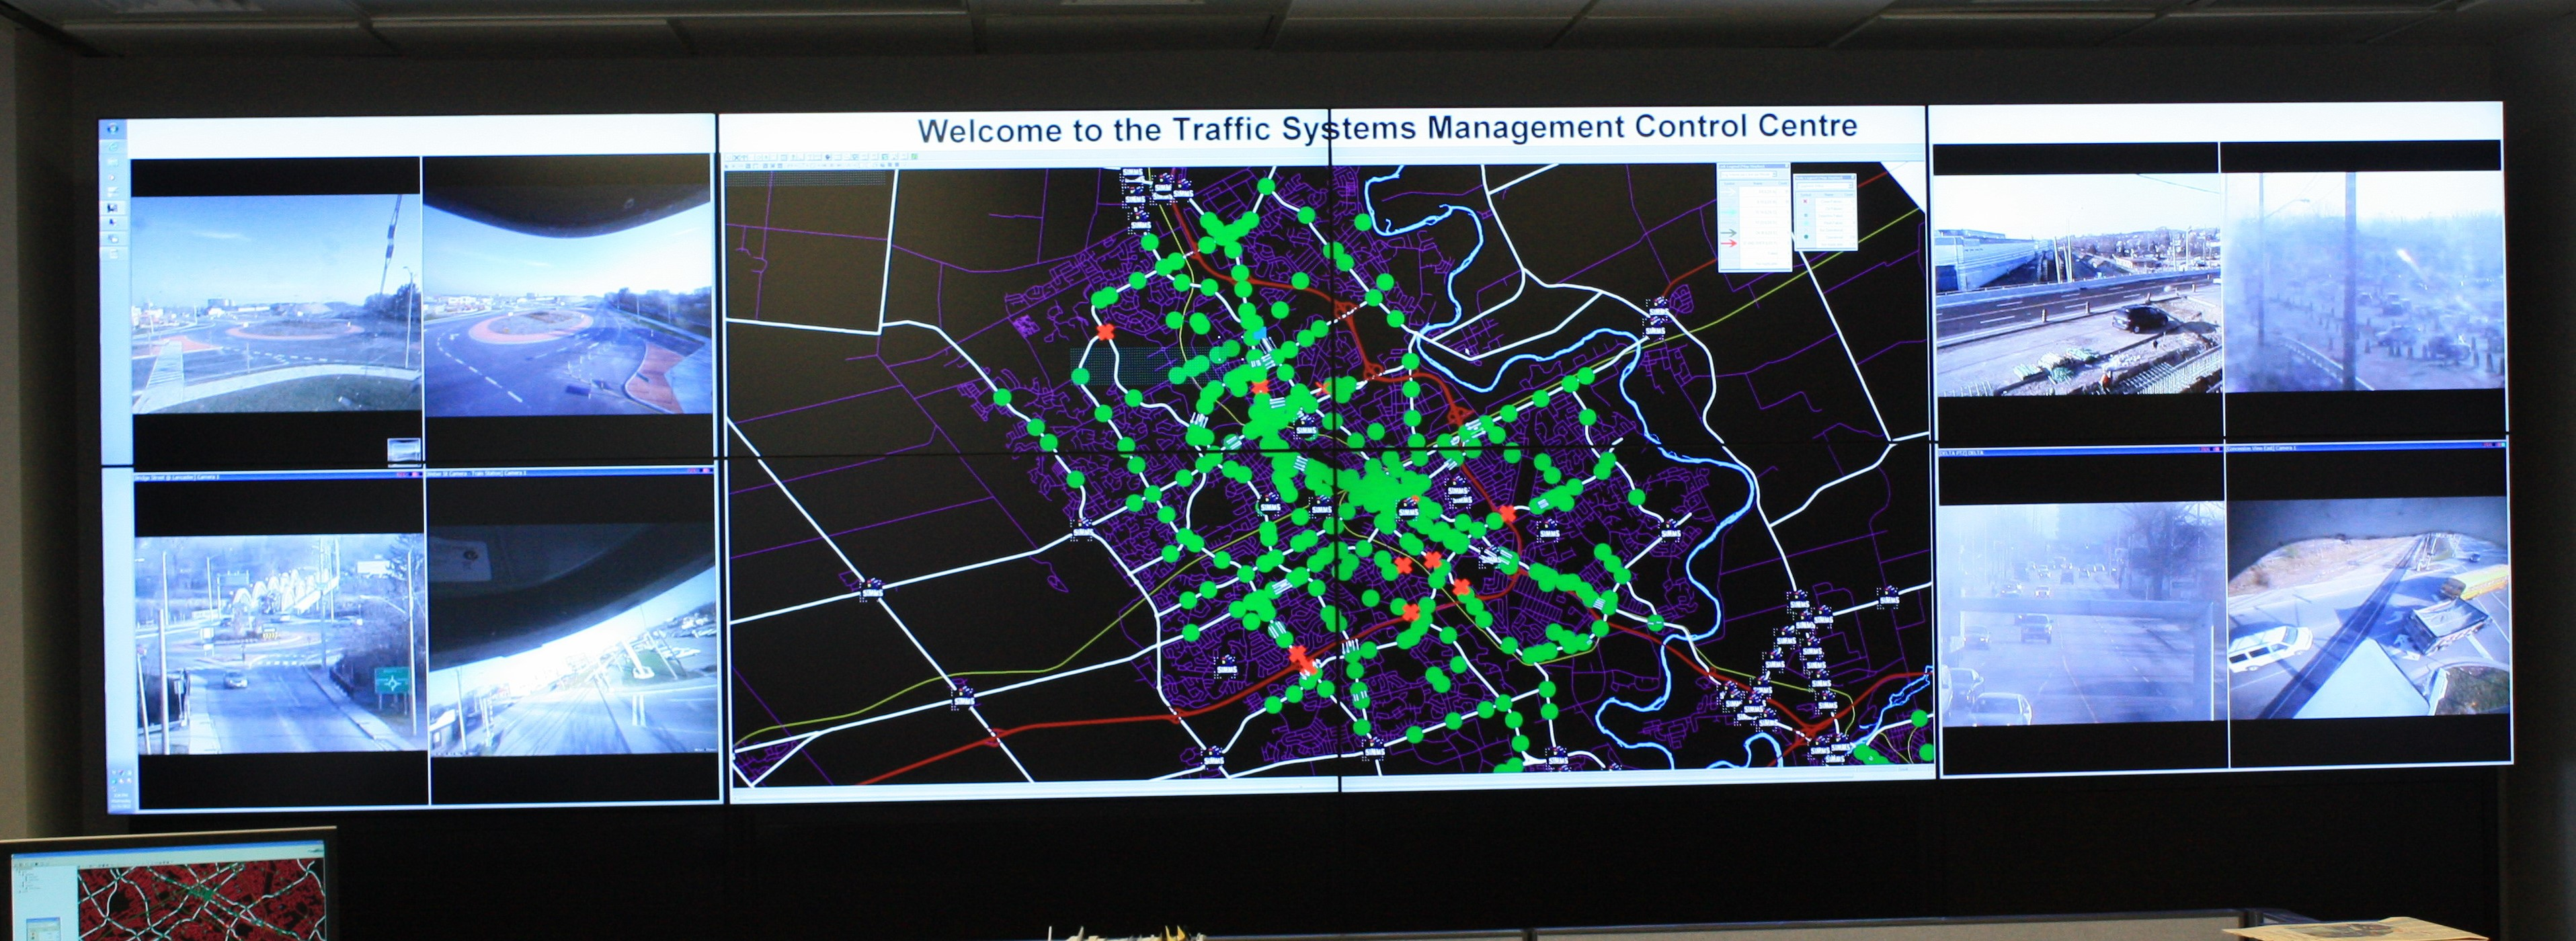 Traffic Control Centre Monitors